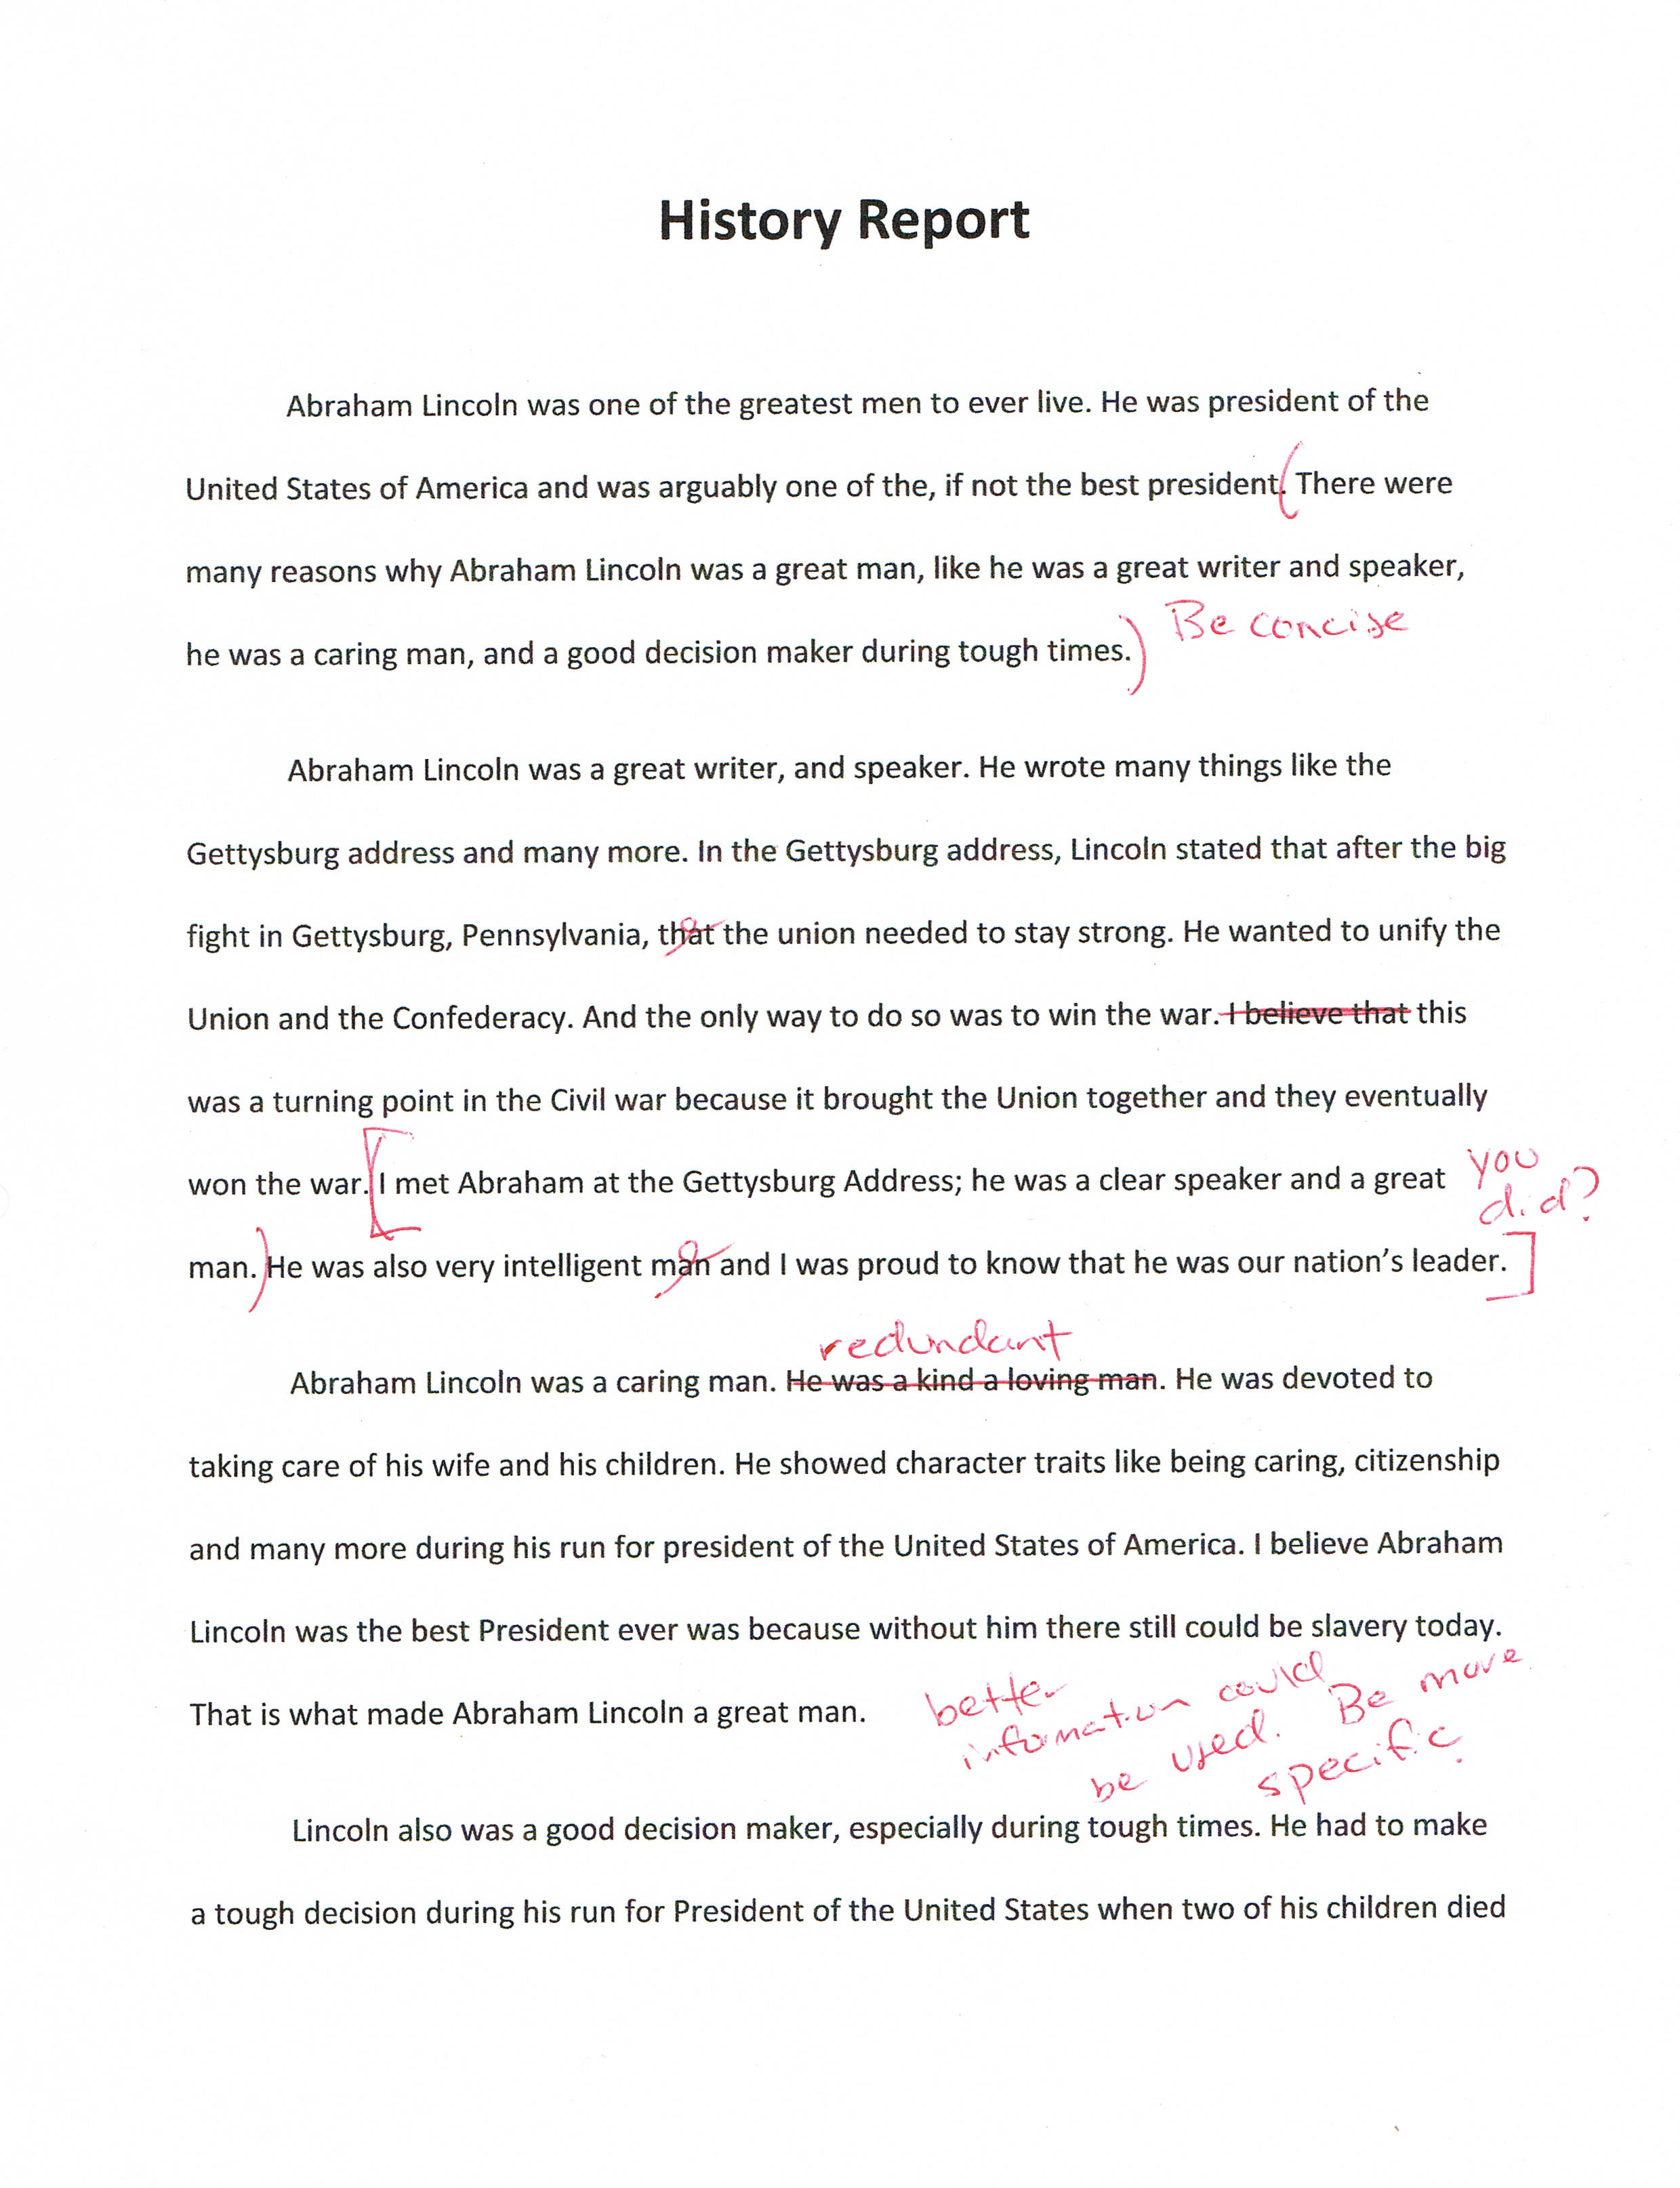 008 Essay Example How To Become An Online Writer Creative Writing Program Software Free Amazing App Generator Download Full